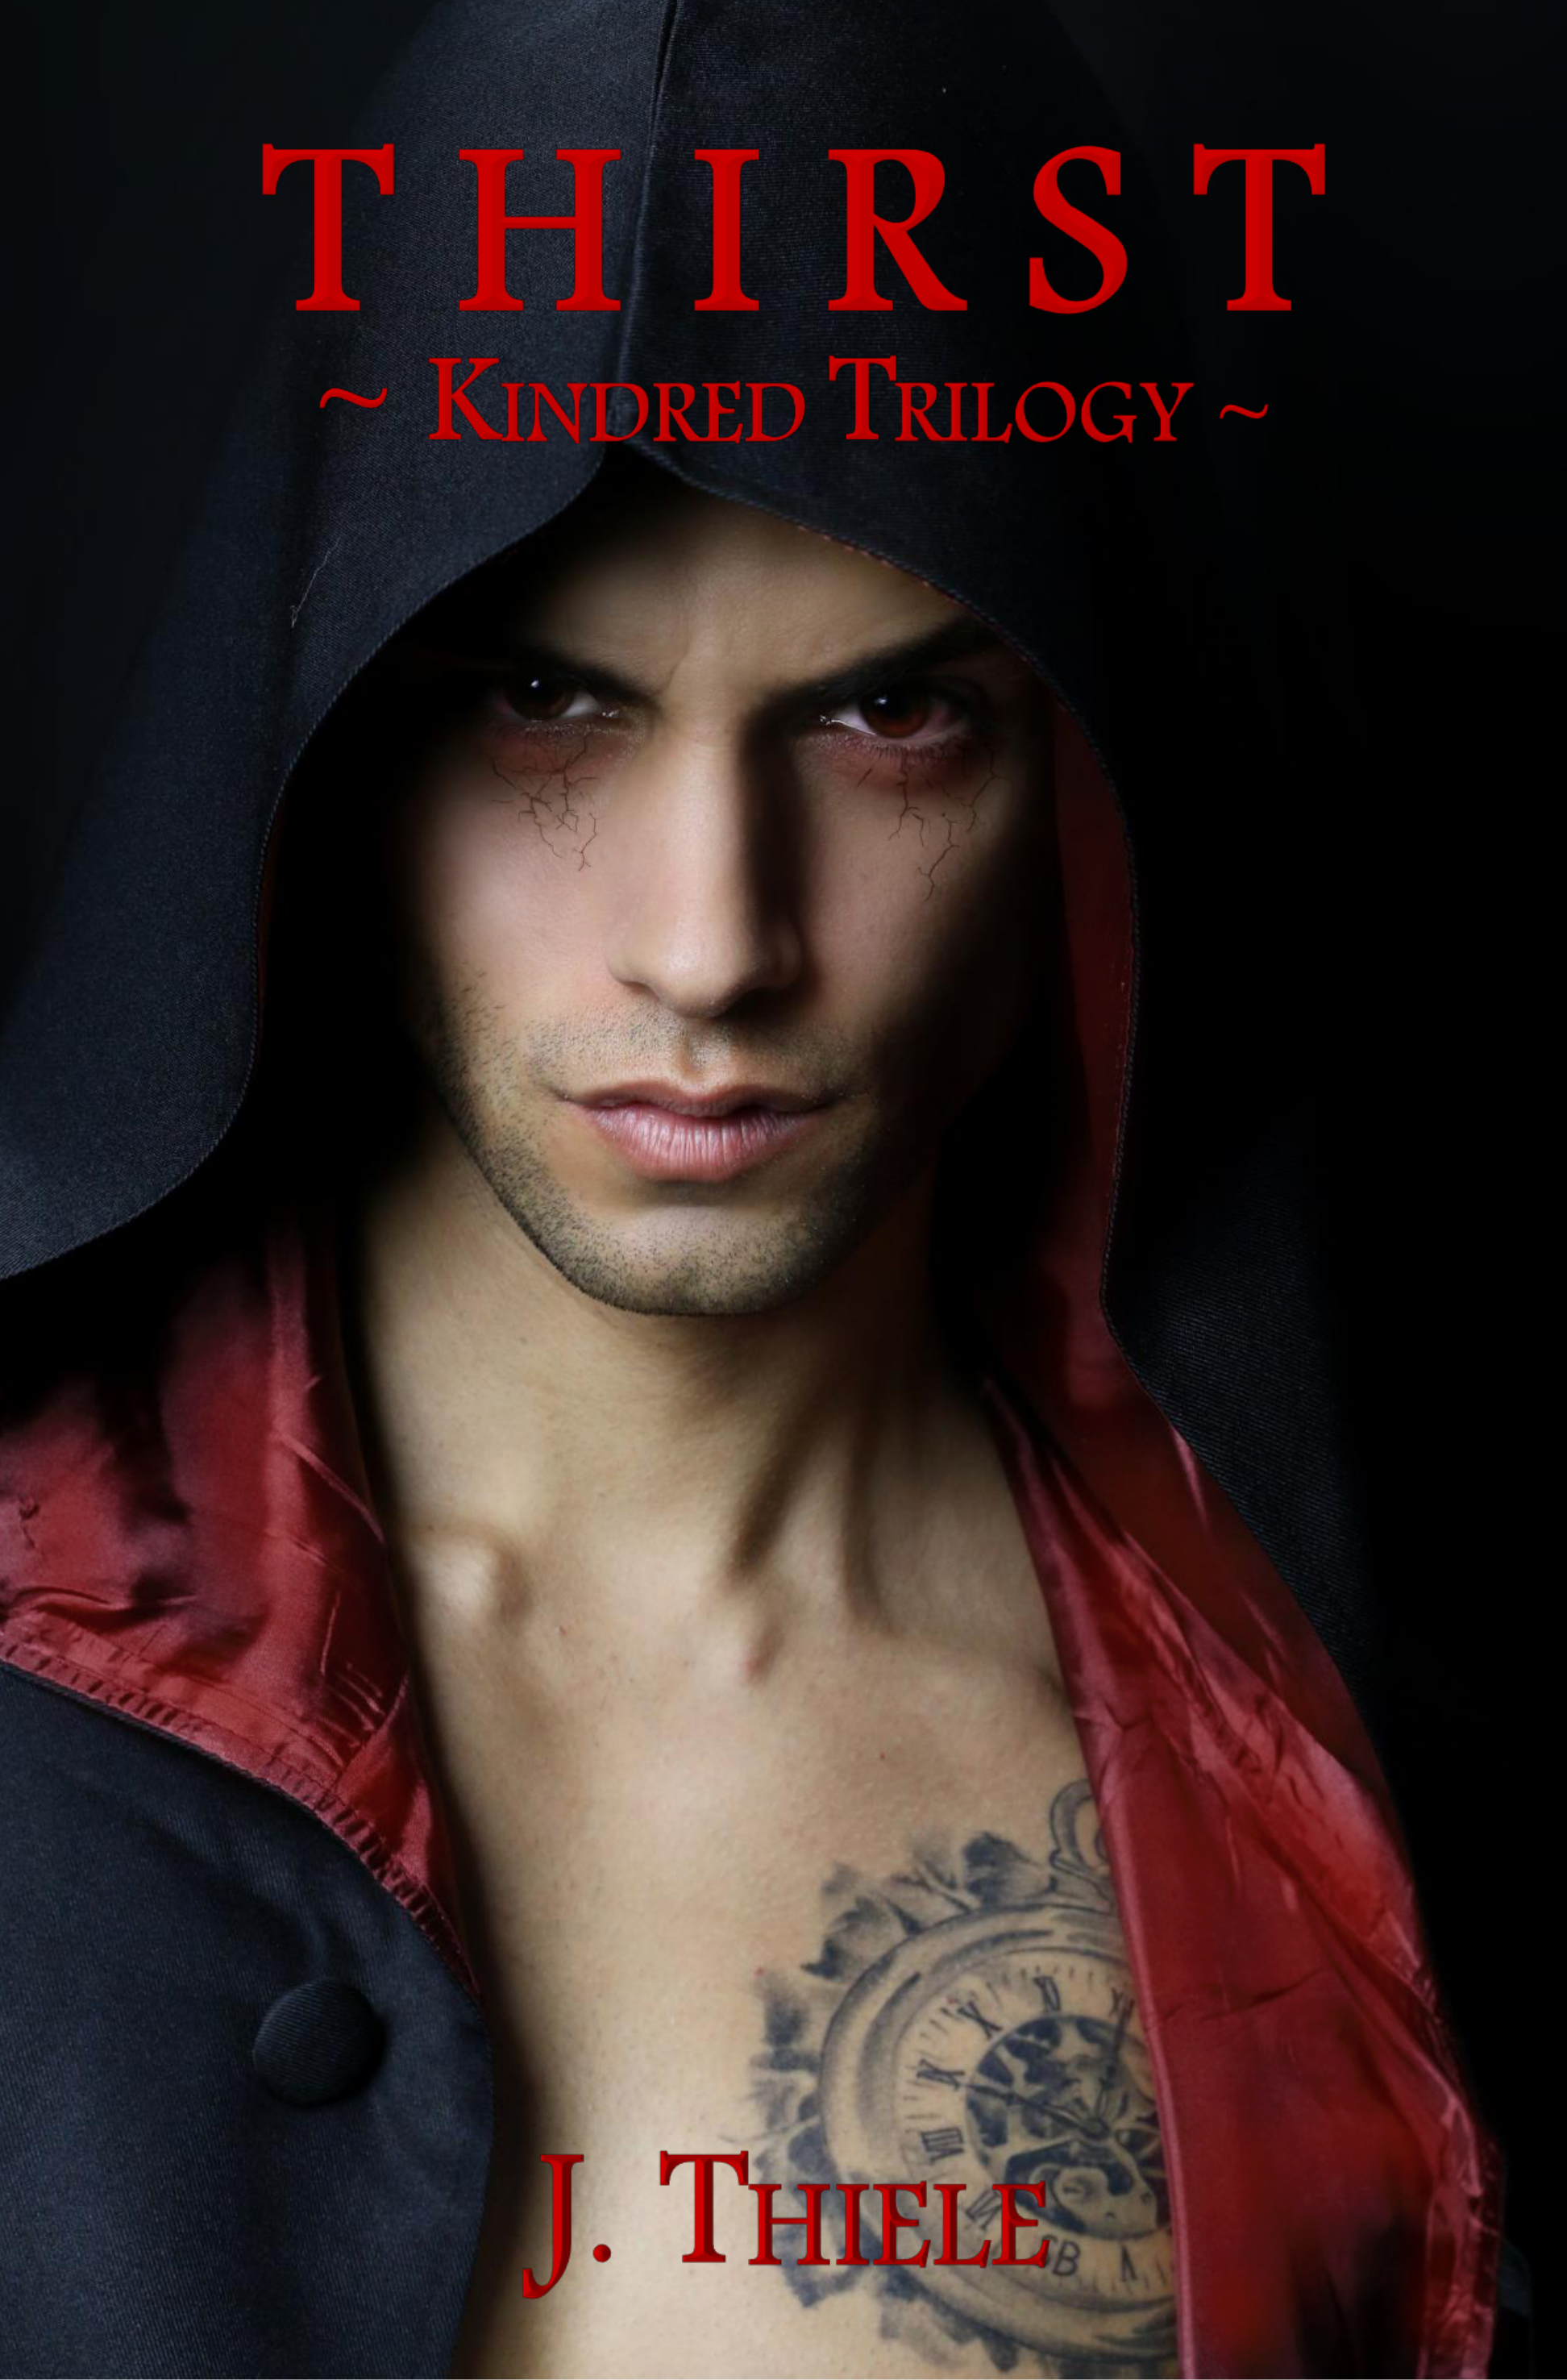 Thirst: Kindred Trilogy J. Thiele